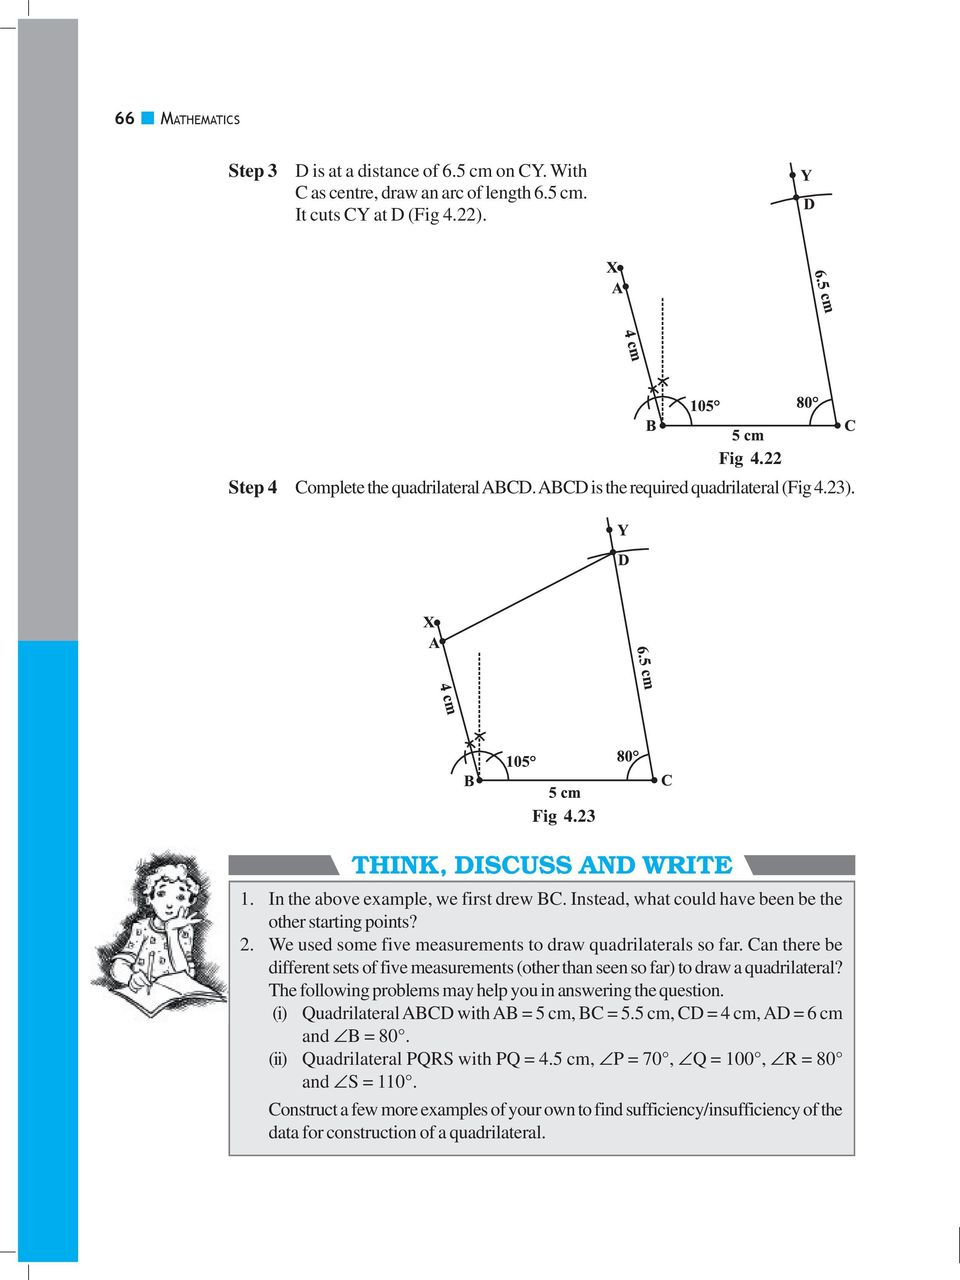 Practical geometry chapter 41 introduction do this pdf we used some five measurements to draw quadrilaterals so far can there be different sets ccuart Images